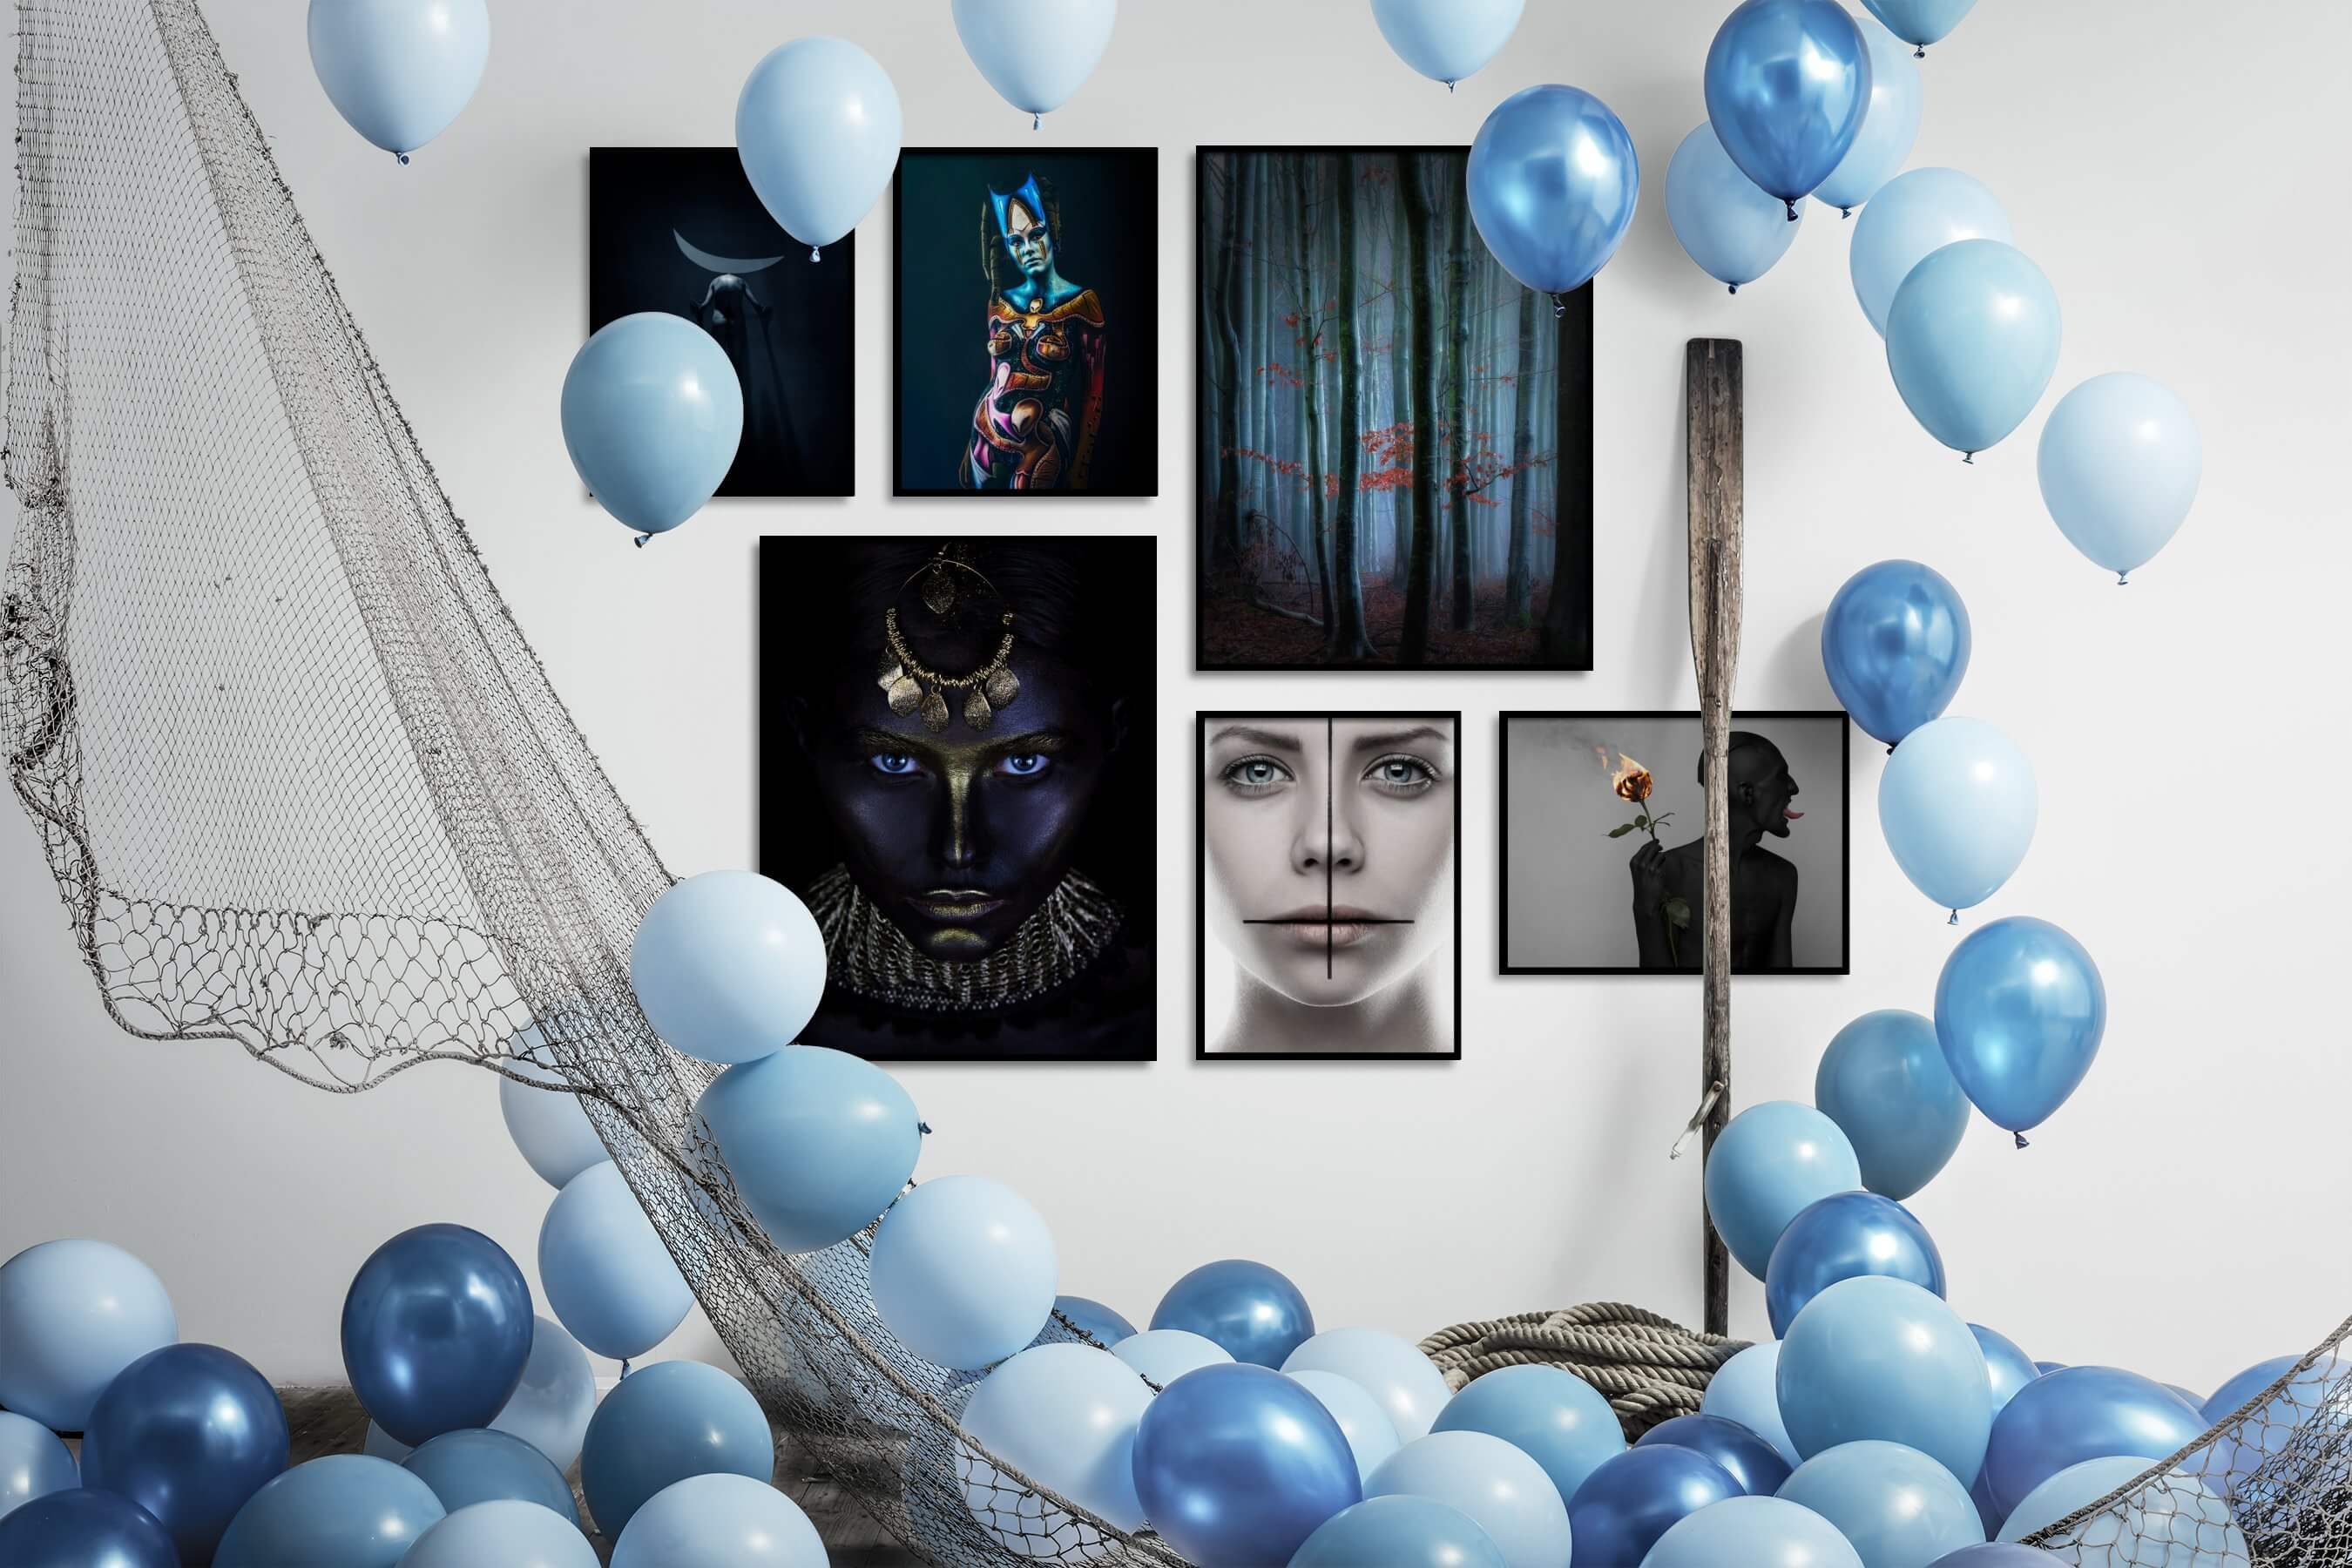 Gallery wall idea with six framed pictures arranged on a wall depicting Artsy, Dark Tones, For the Minimalist, Fashion & Beauty, and Nature